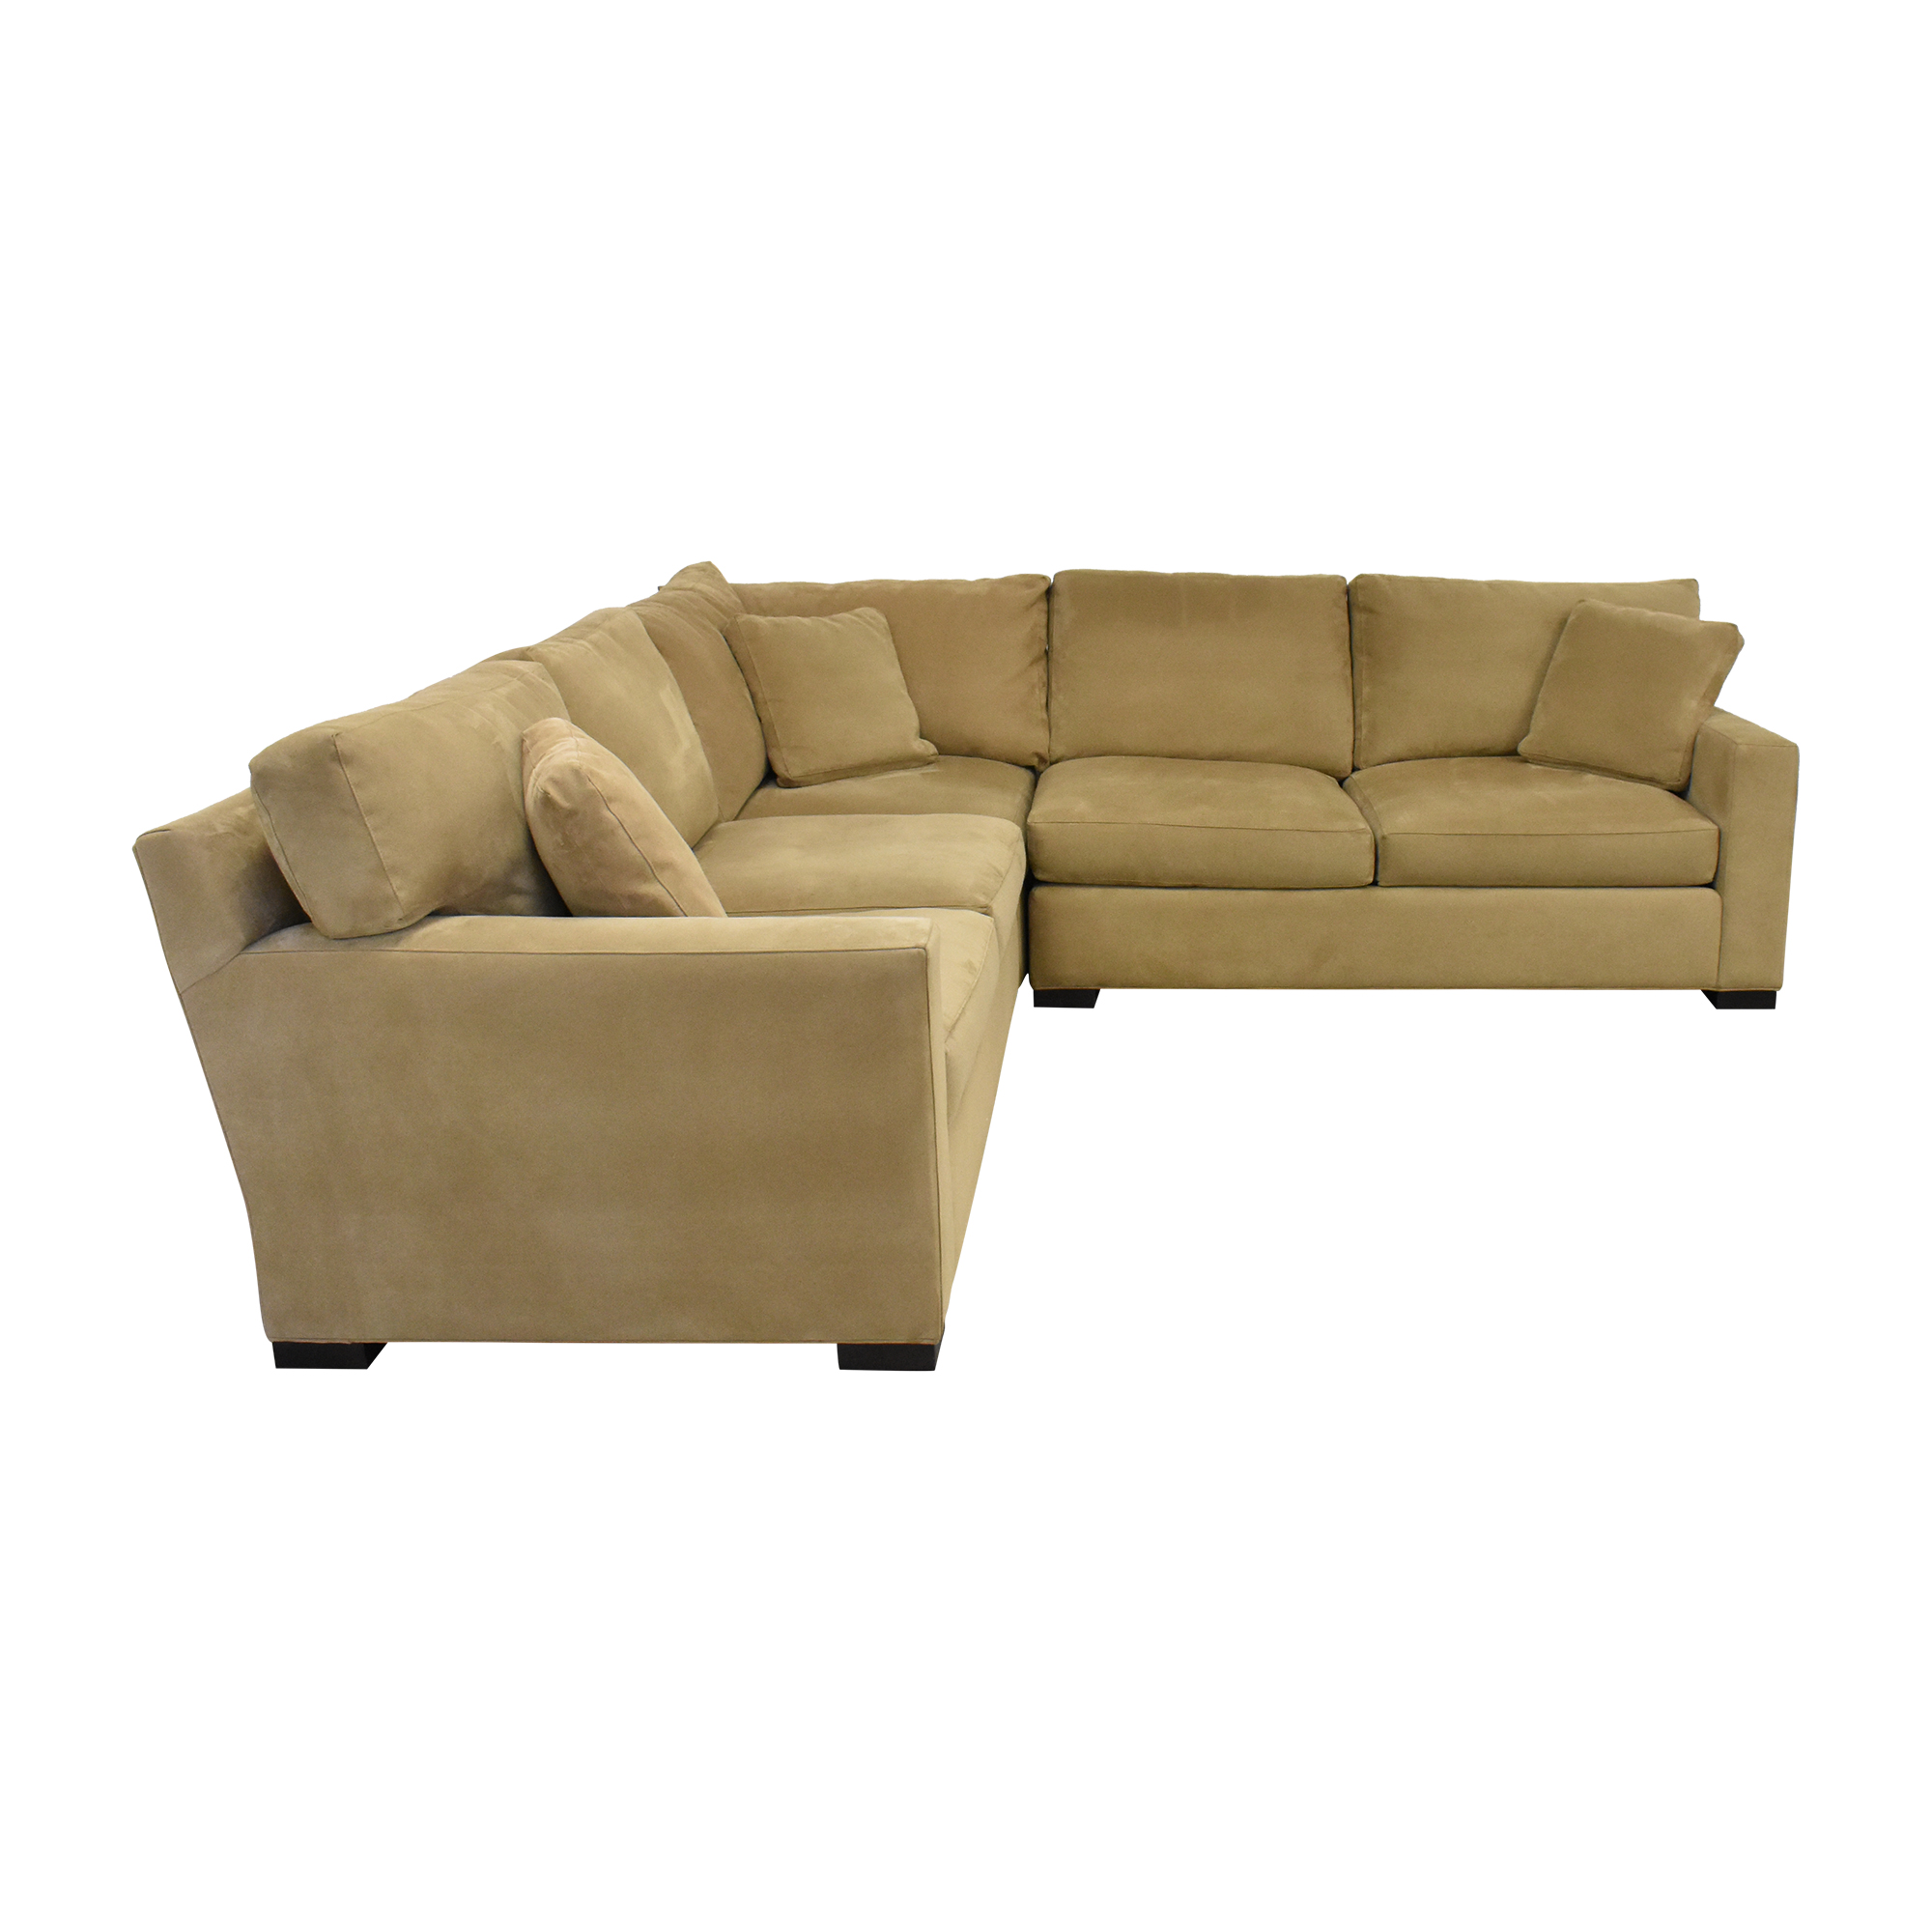 Crate & Barrel Axis II Three Piece Sectional Sofa sale